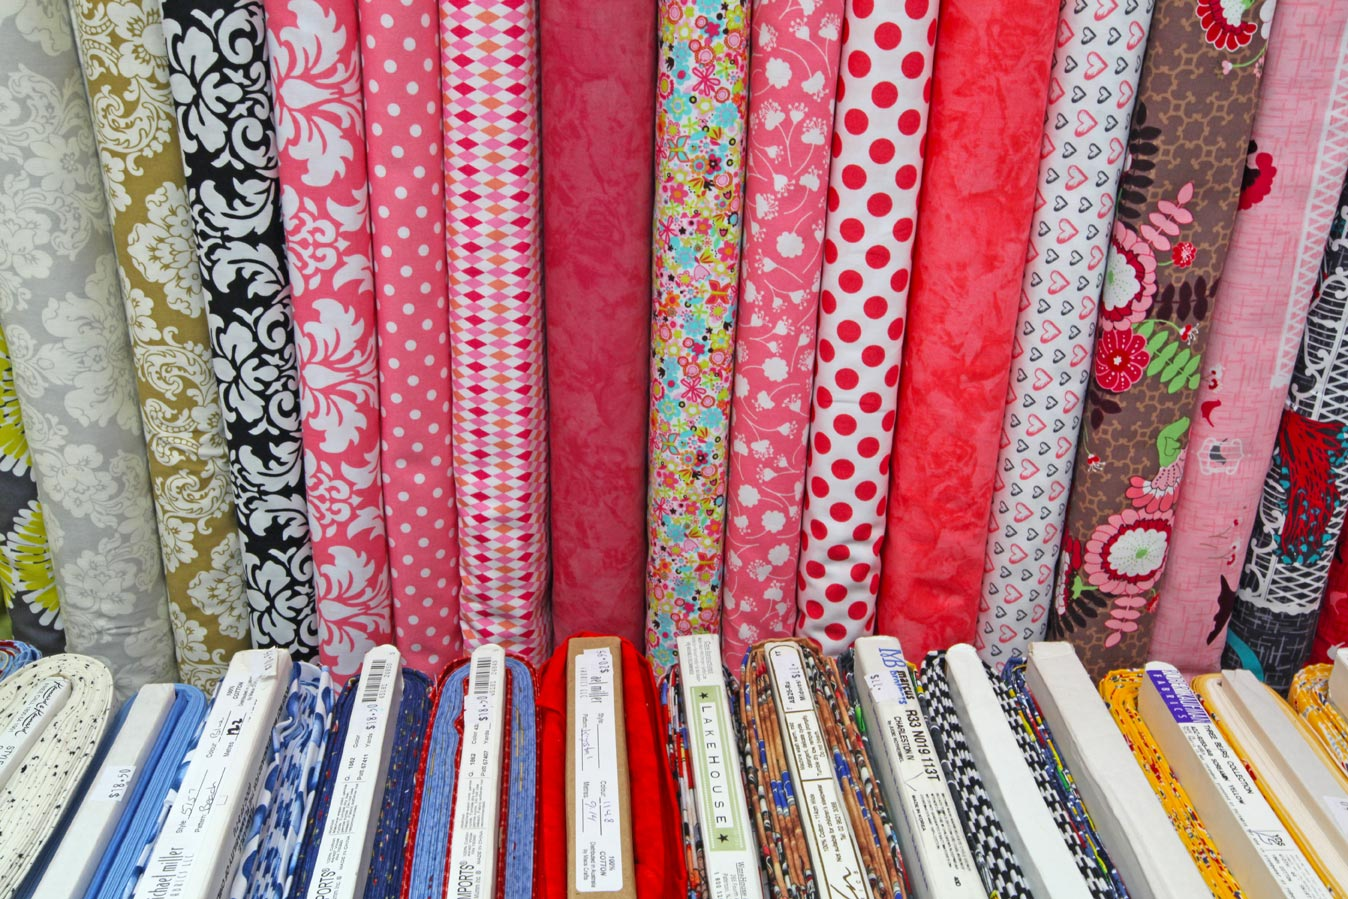 The Quilters' Patch Shop patterned fabric